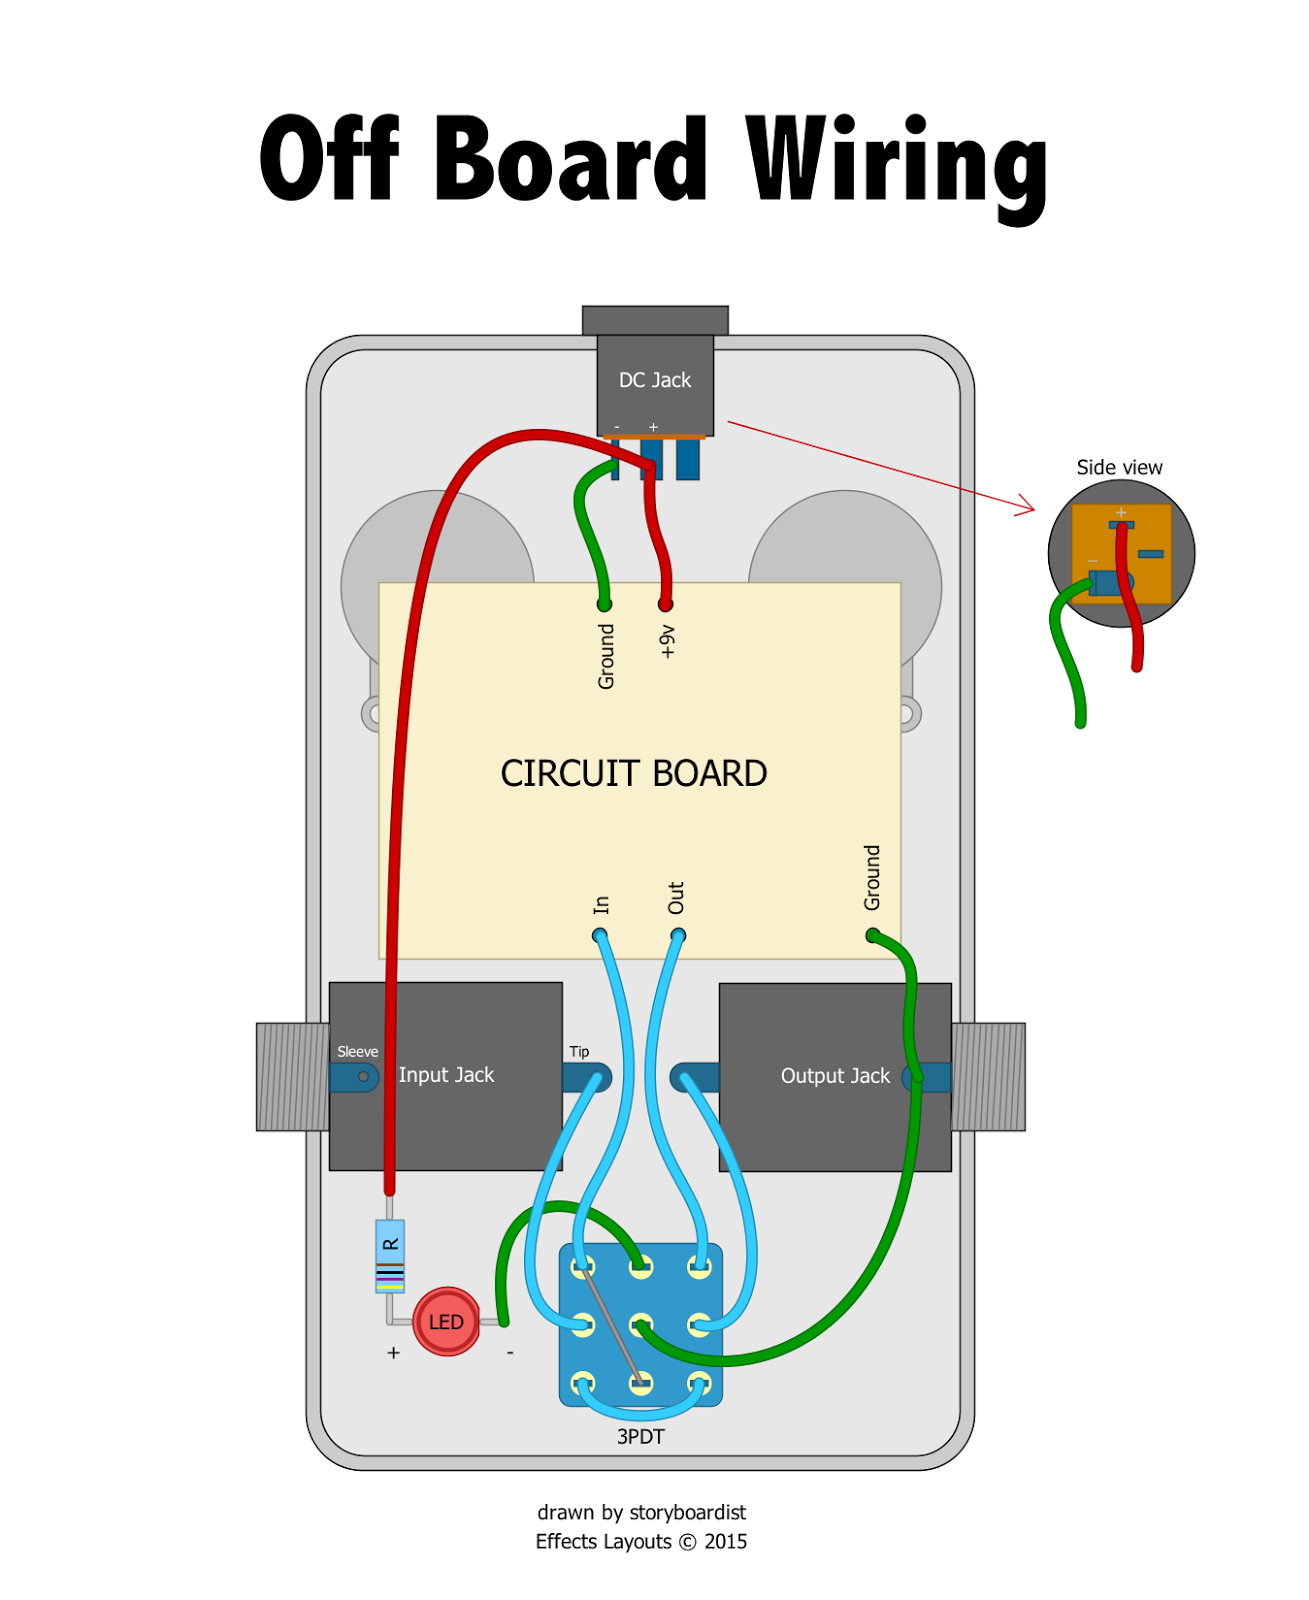 Guitar Pedalboard Wiring Diagram Vw Sharan Madbean Great Installation Of Fuzz Face 3pdt Schema Rh El124a Crazycaches De Pedal Layout